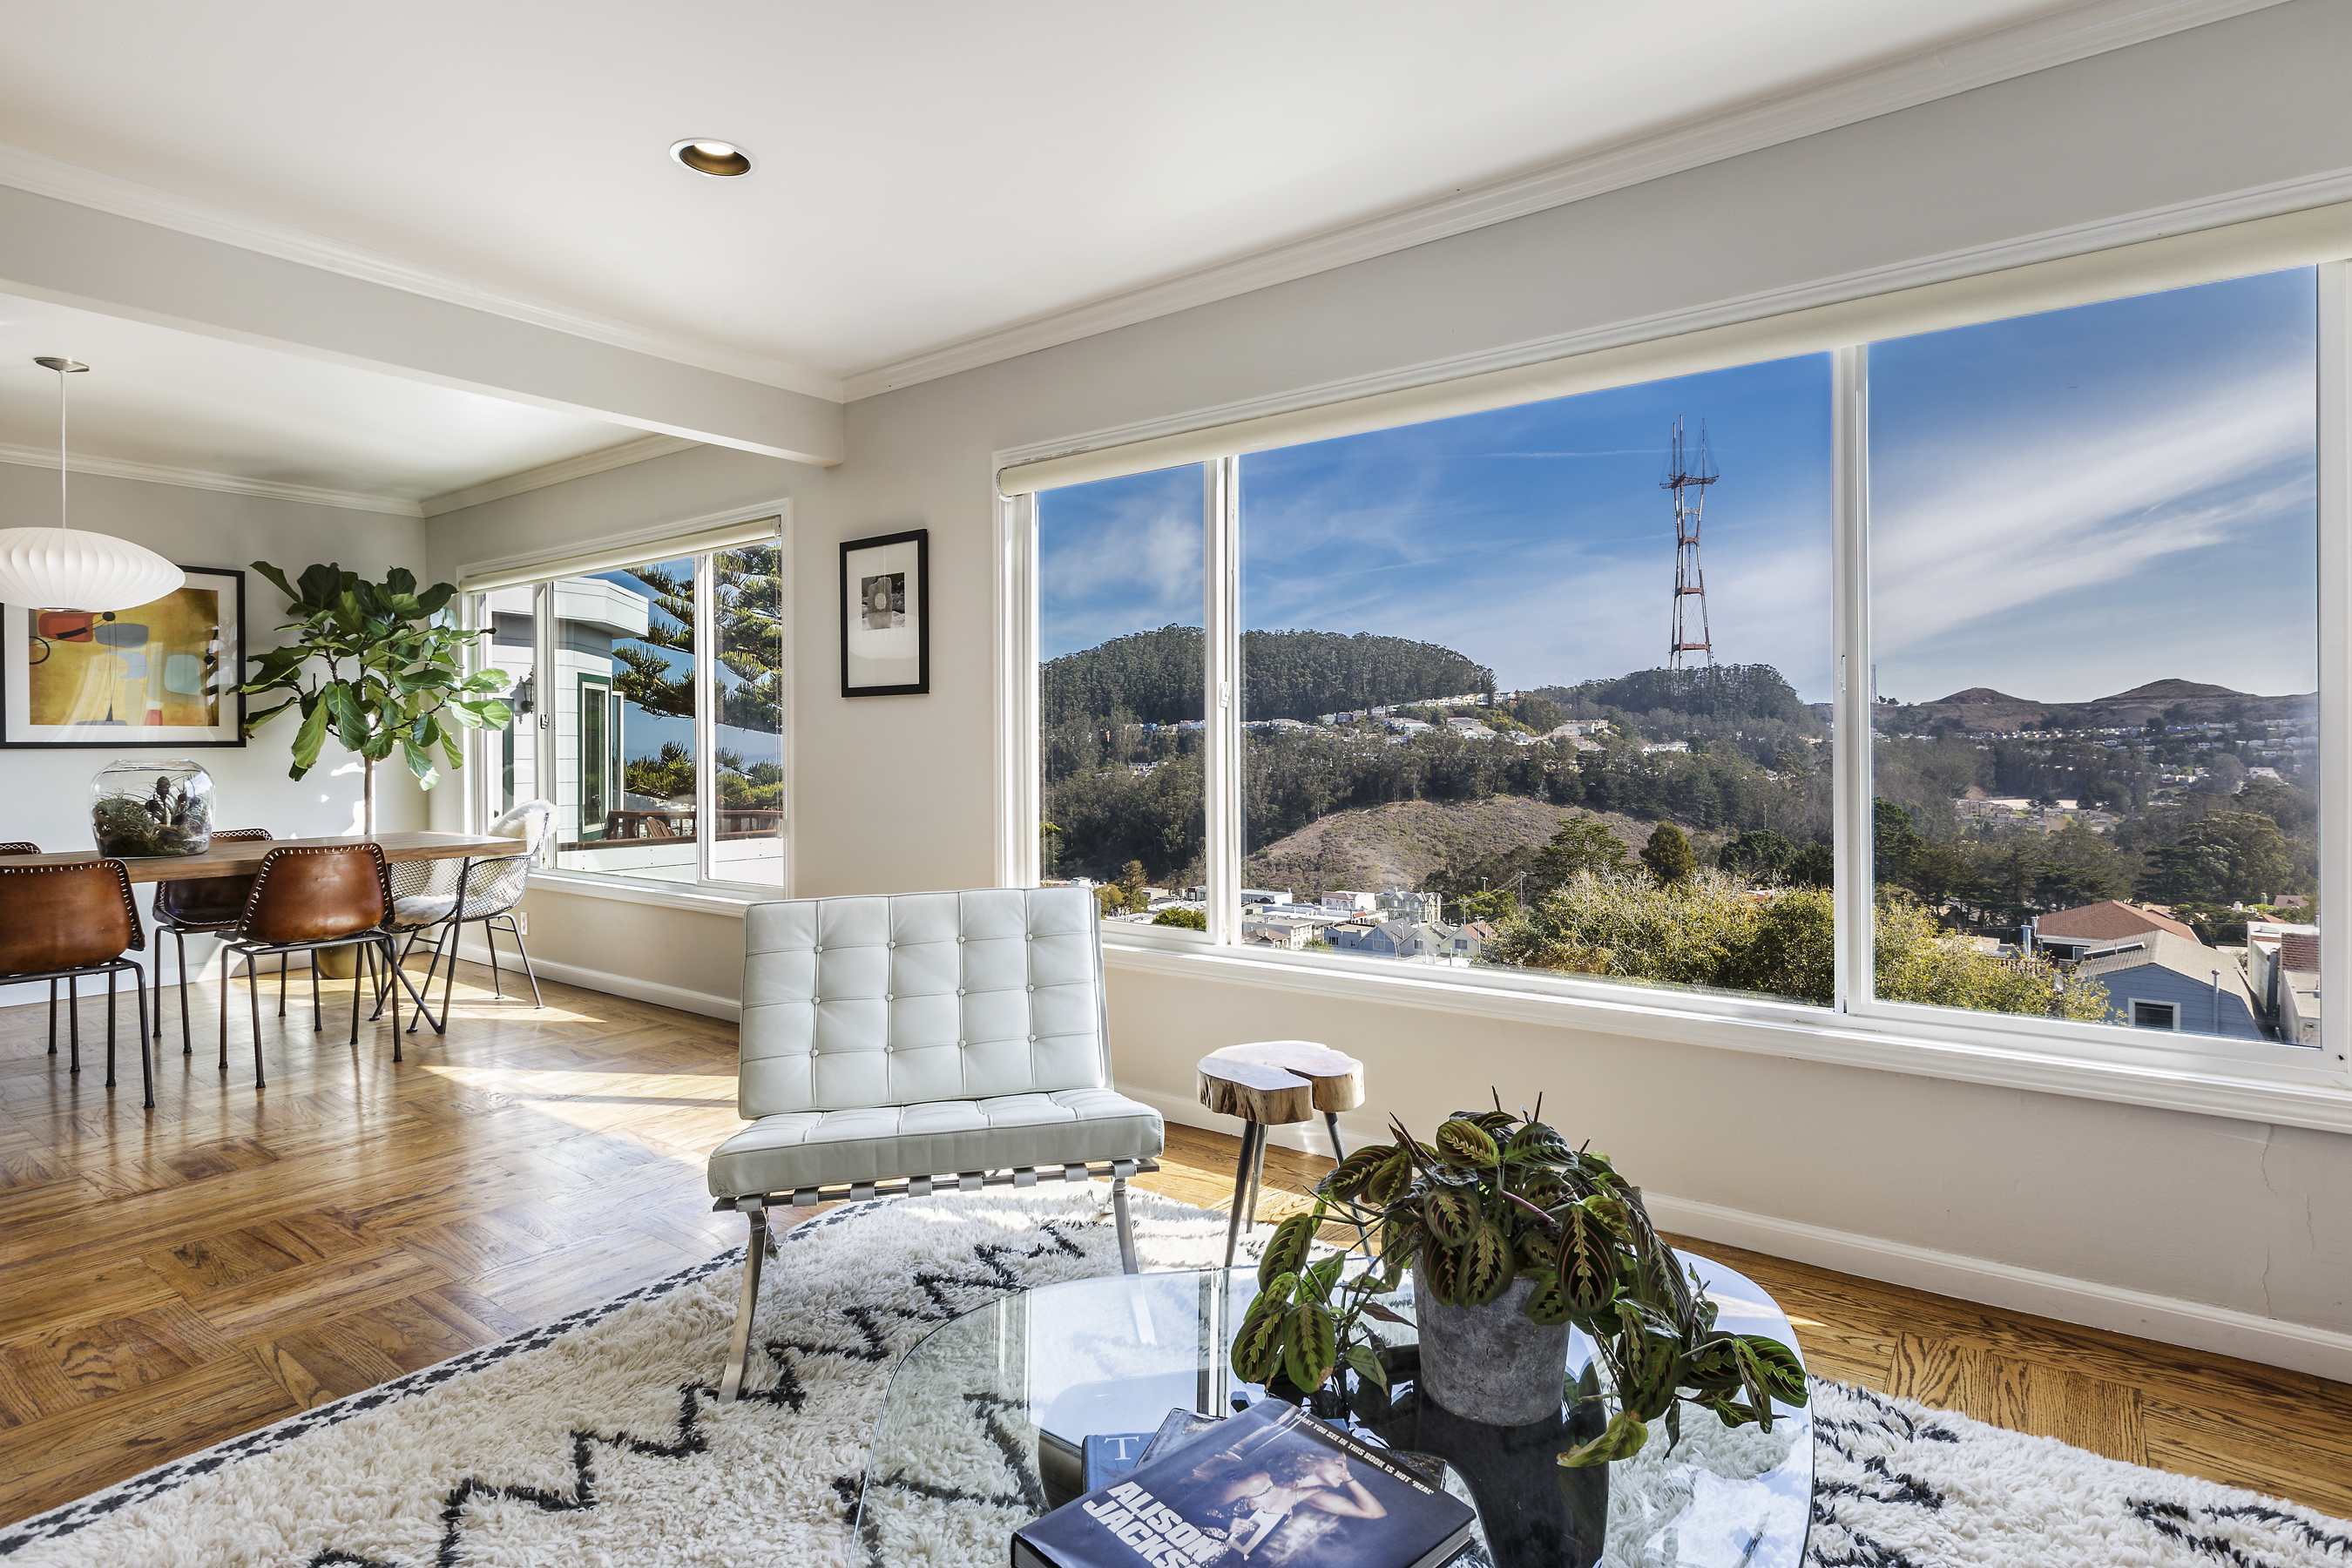 For Sale | 1972 11th Ave, Golden Gate Heights, San Francisco